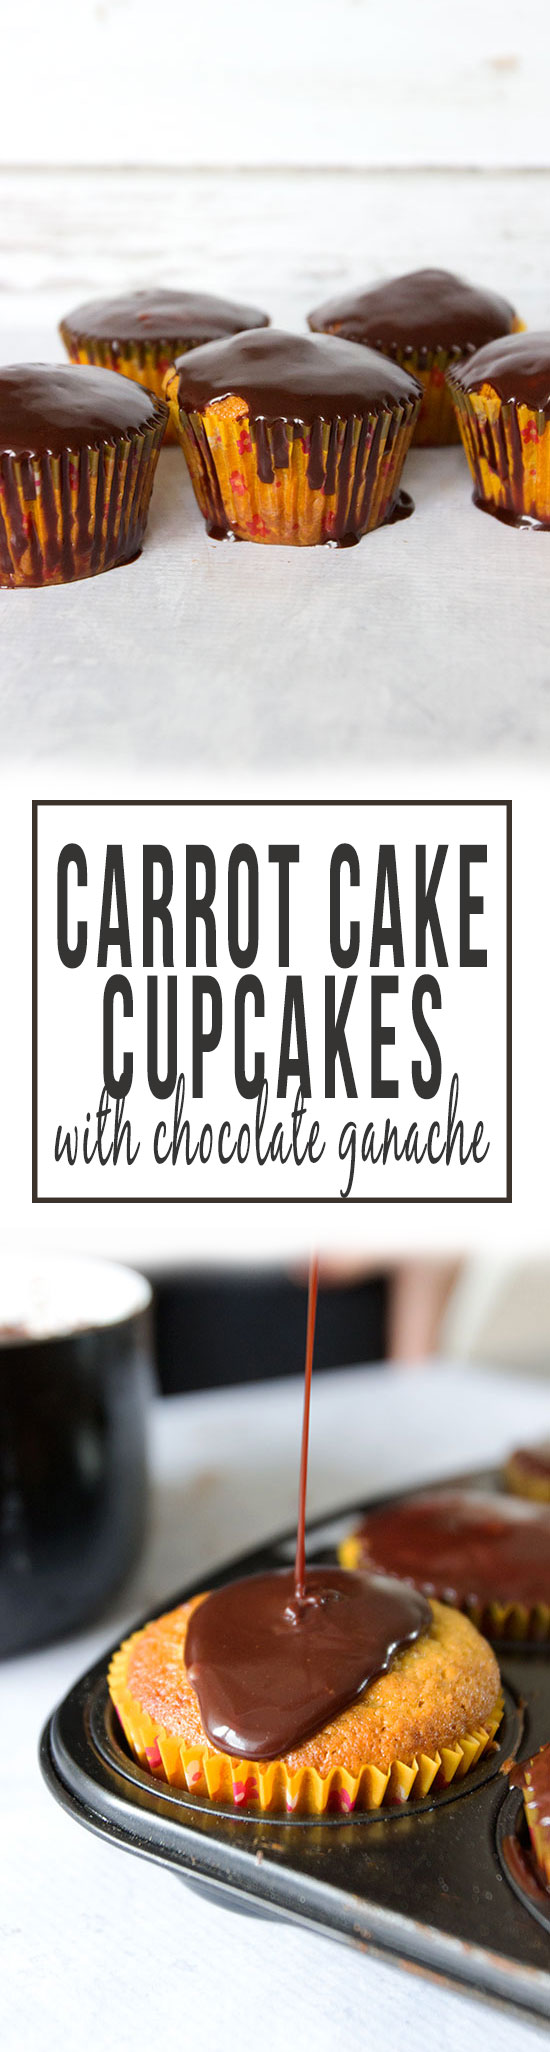 Blender Carrot Cake Cupcakes with Chocolate Ganache via www.sprinkleofgreen.com | These gluten free carrot cake cupcakes are moist and delicious with a luscious chocolate ganache glaze!